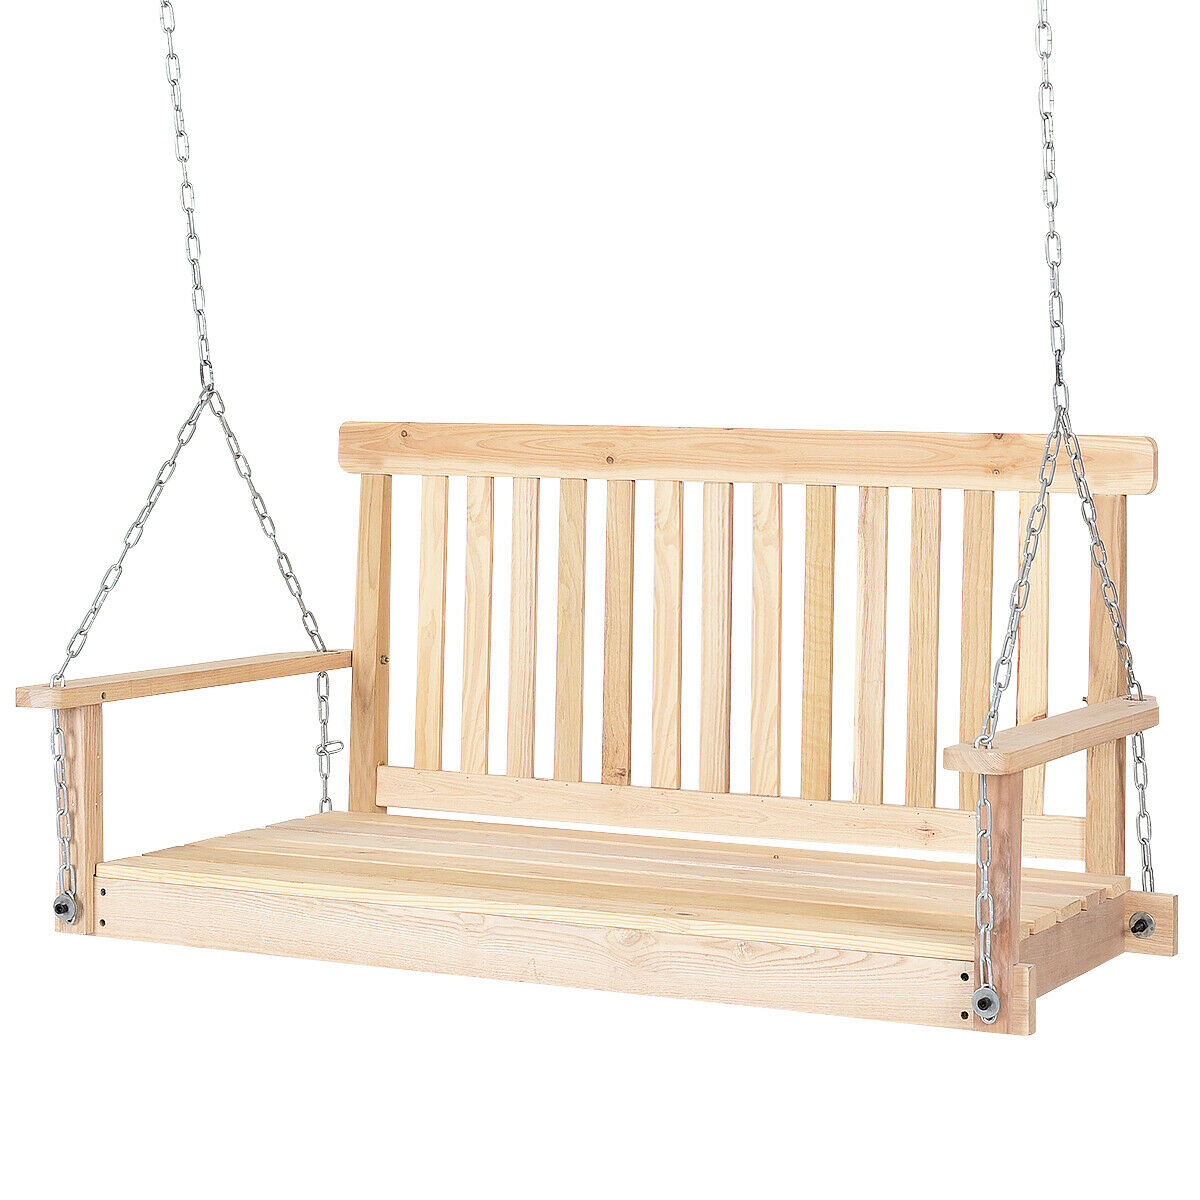 Tremendous Costway 4 Ft Porch Swing Natural Wood Garden Swing Bench Patio Hanging Seat Chains Unemploymentrelief Wooden Chair Designs For Living Room Unemploymentrelieforg